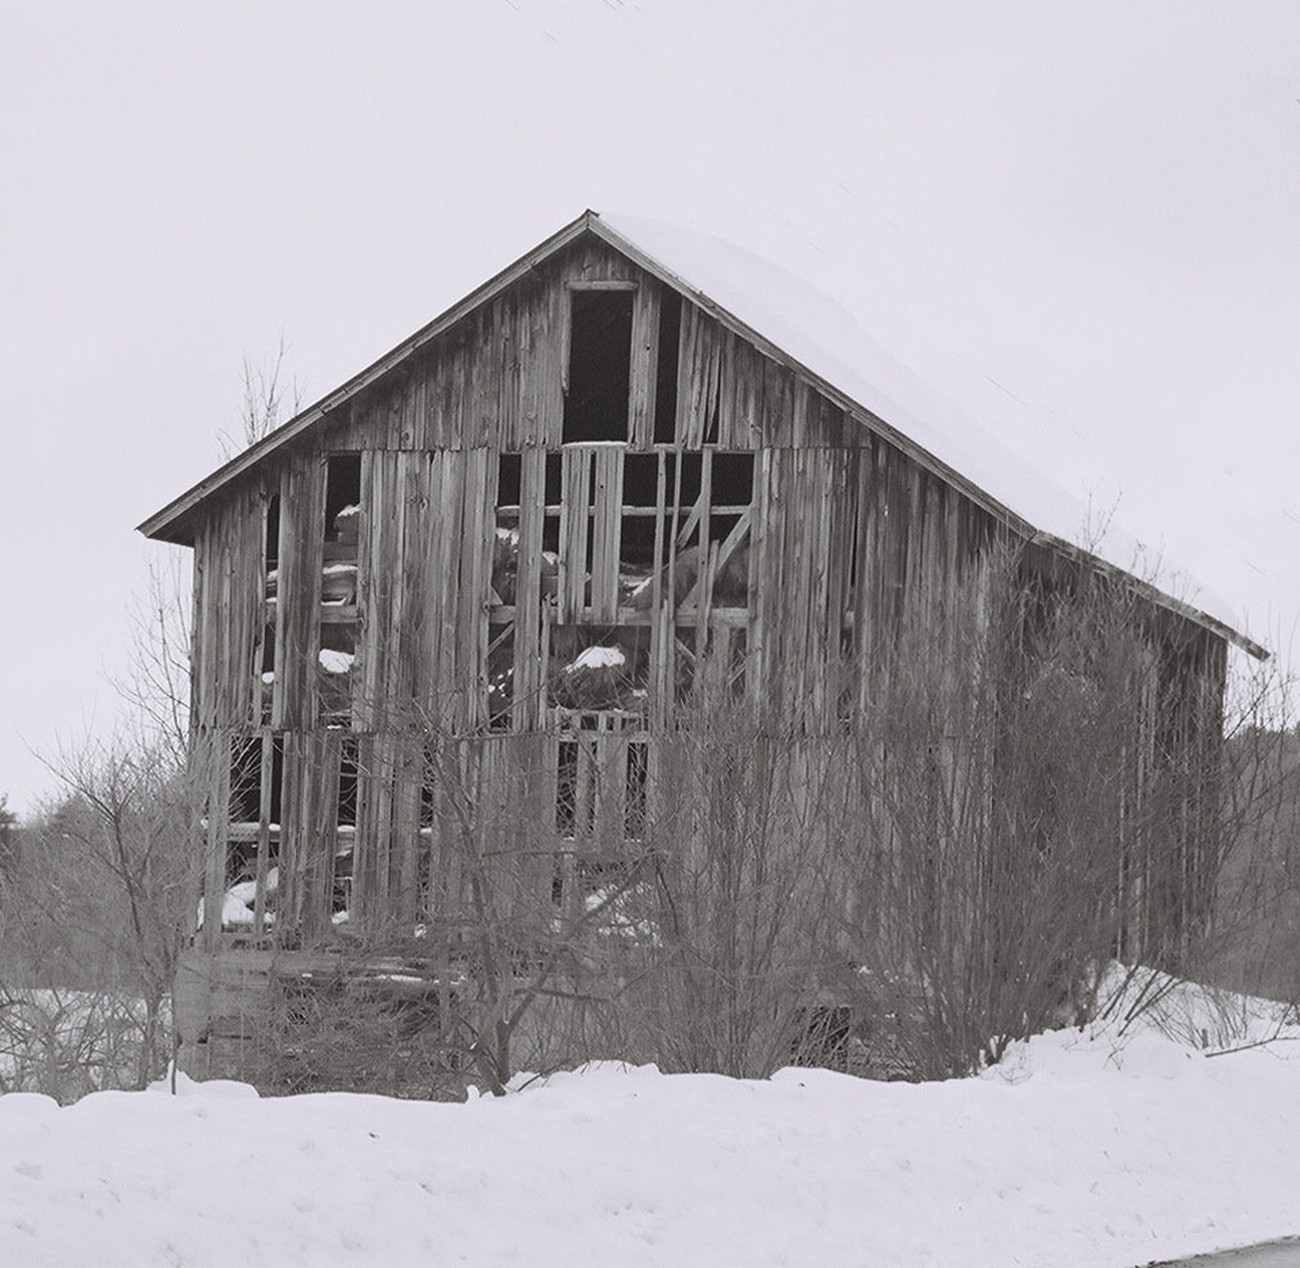 Taken while visiting upstate New York in the Winter.